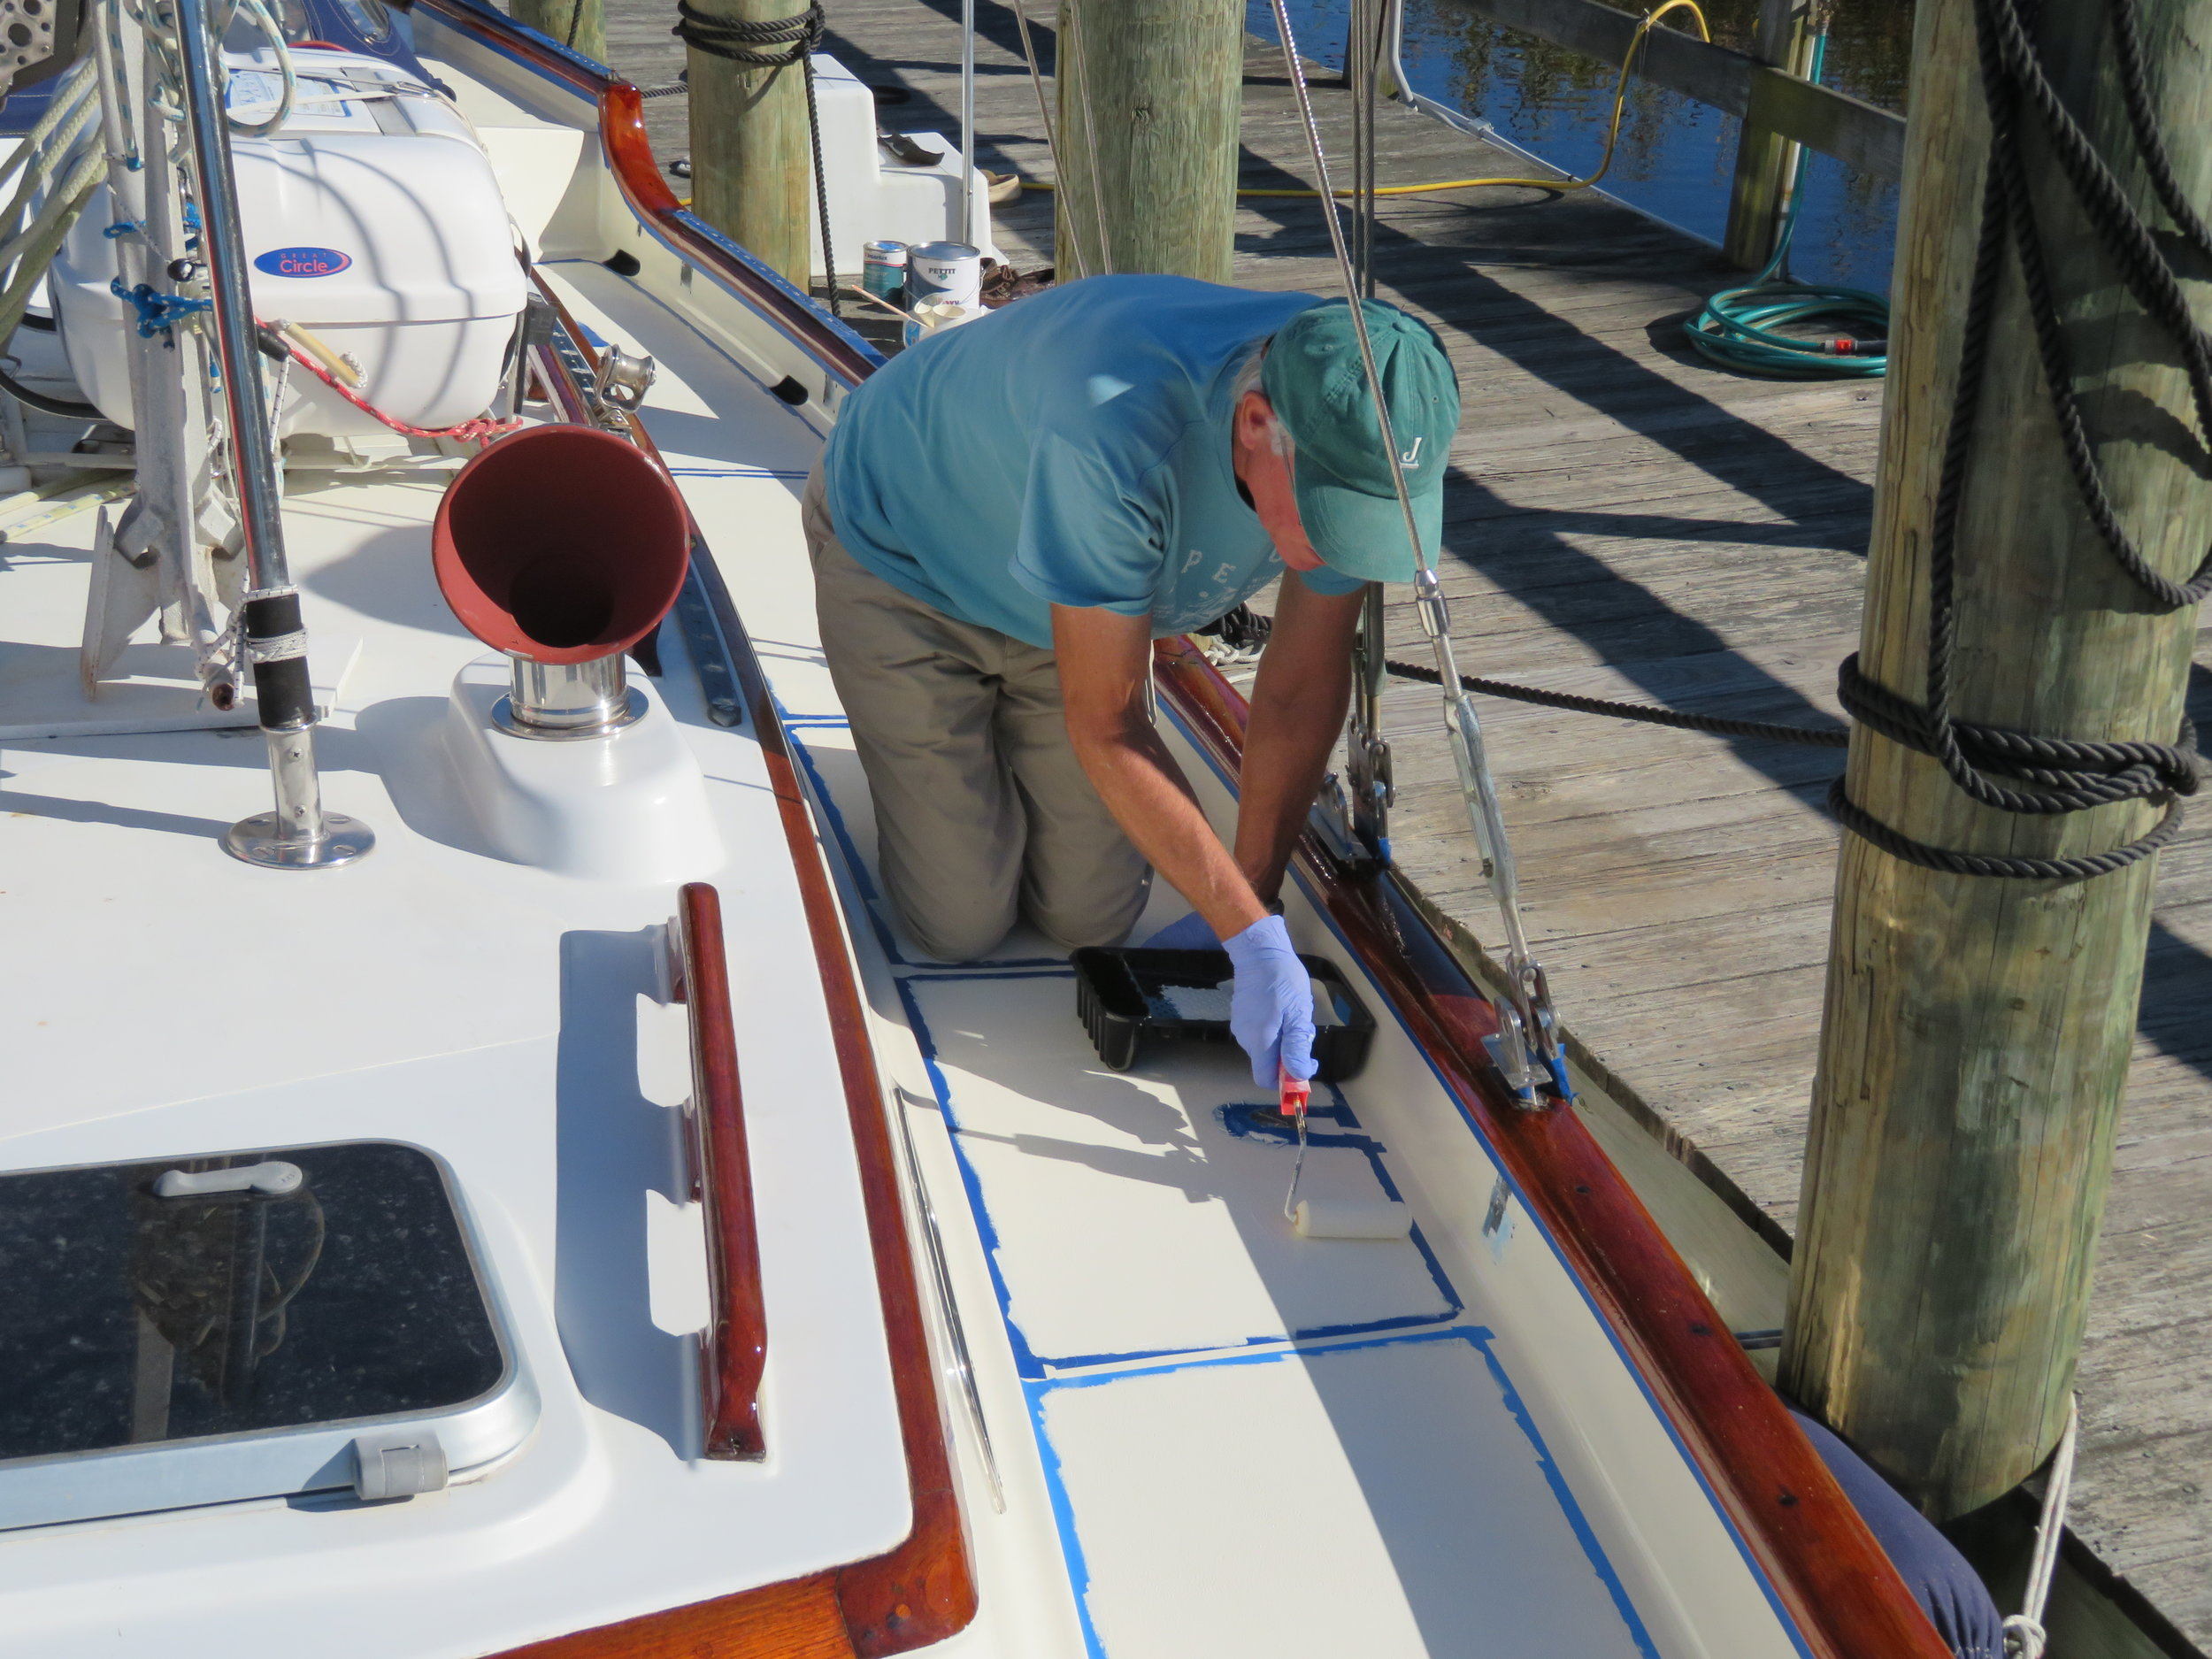 Warmer weather has allowed David to finally finish the deck painting ... Hallelujah!